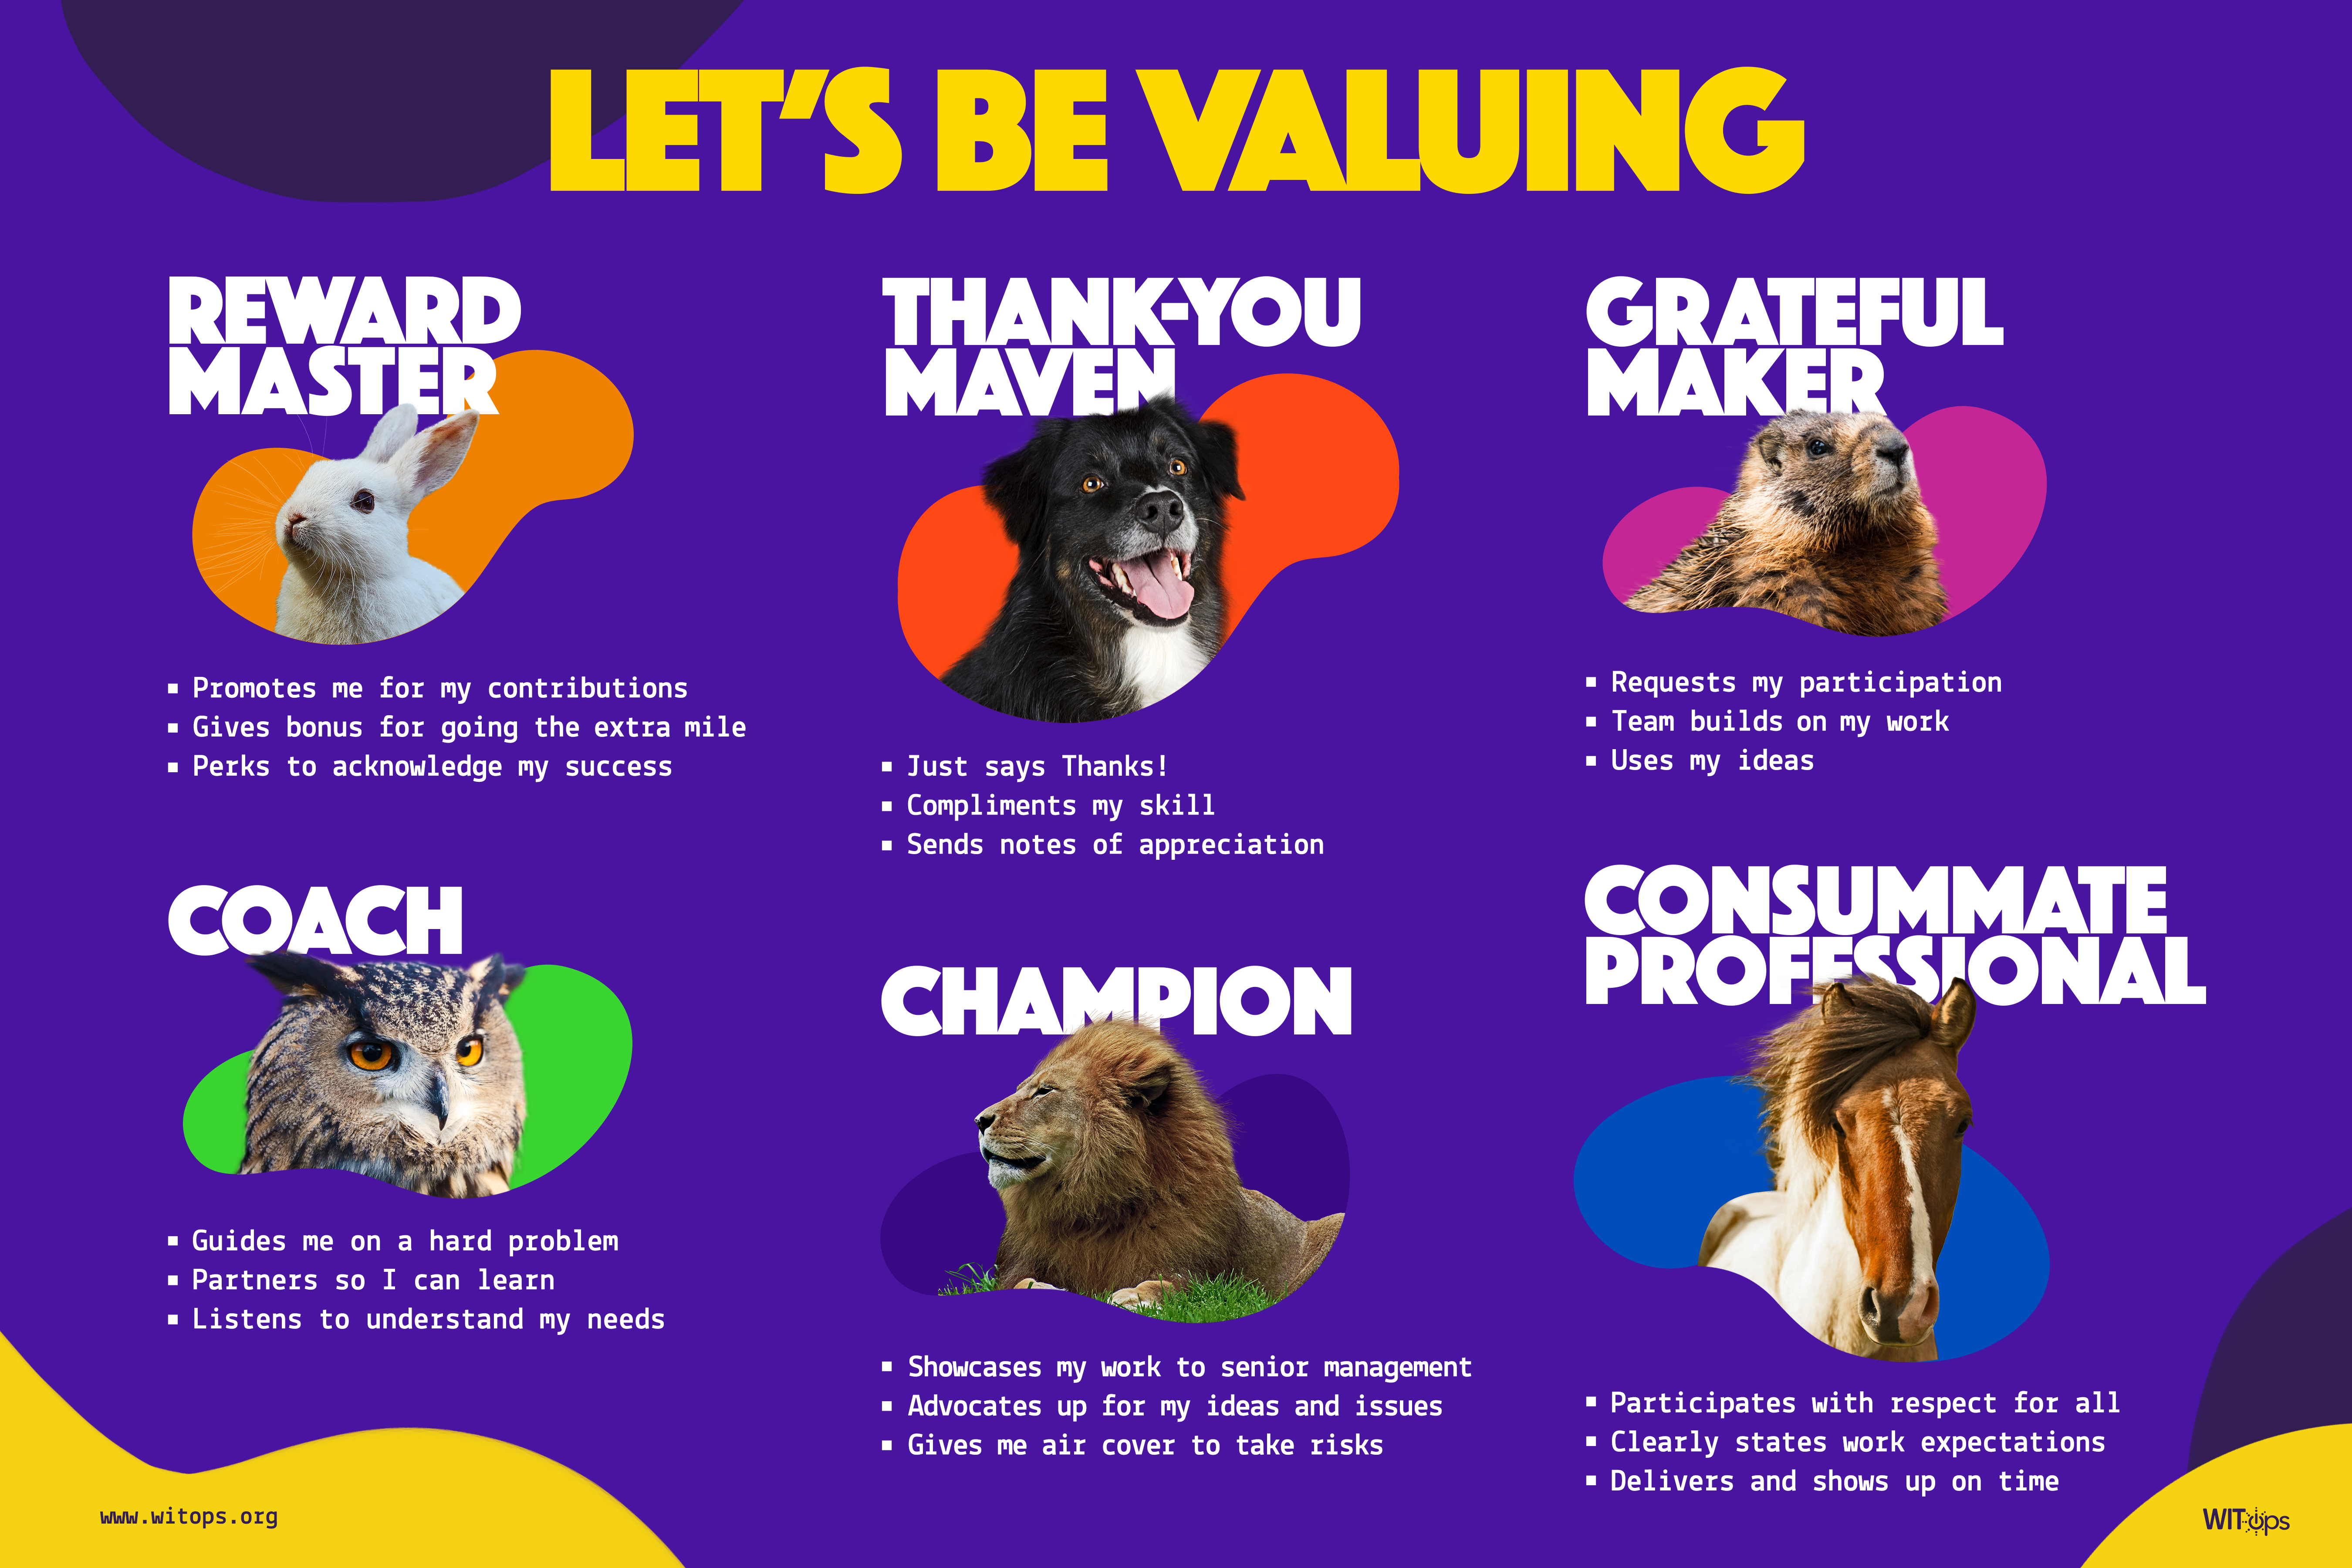 Let's Be Valuing Poster